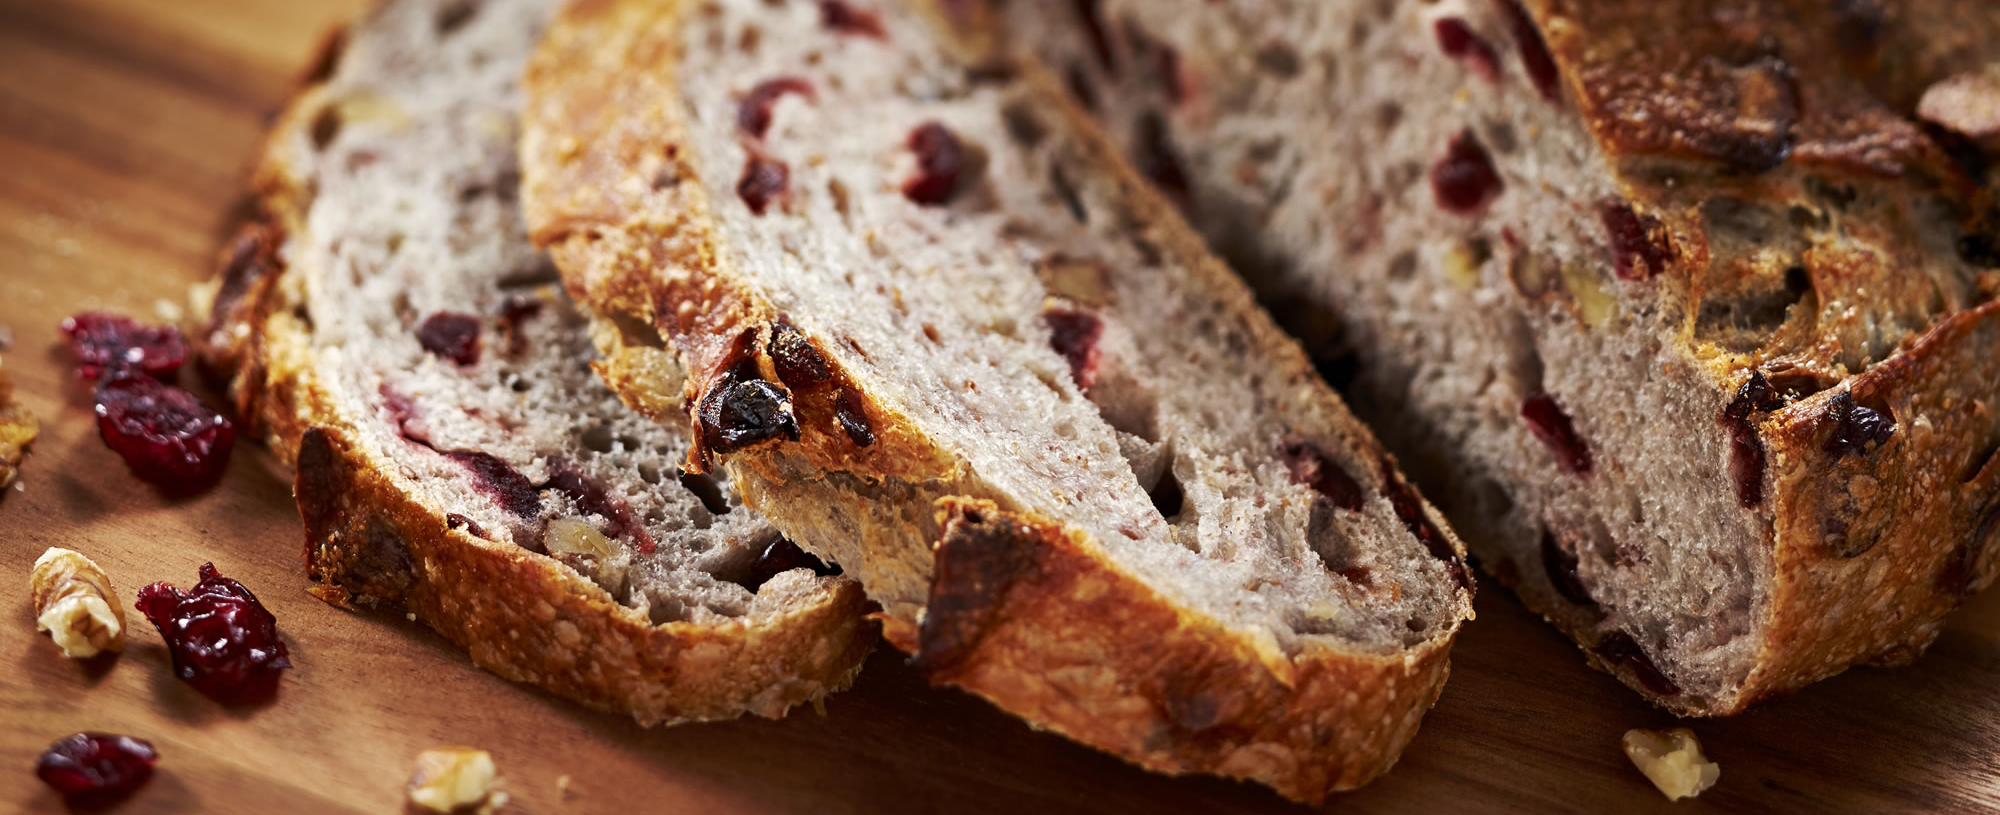 2000x815_Cranberry Walnut Bread 8116